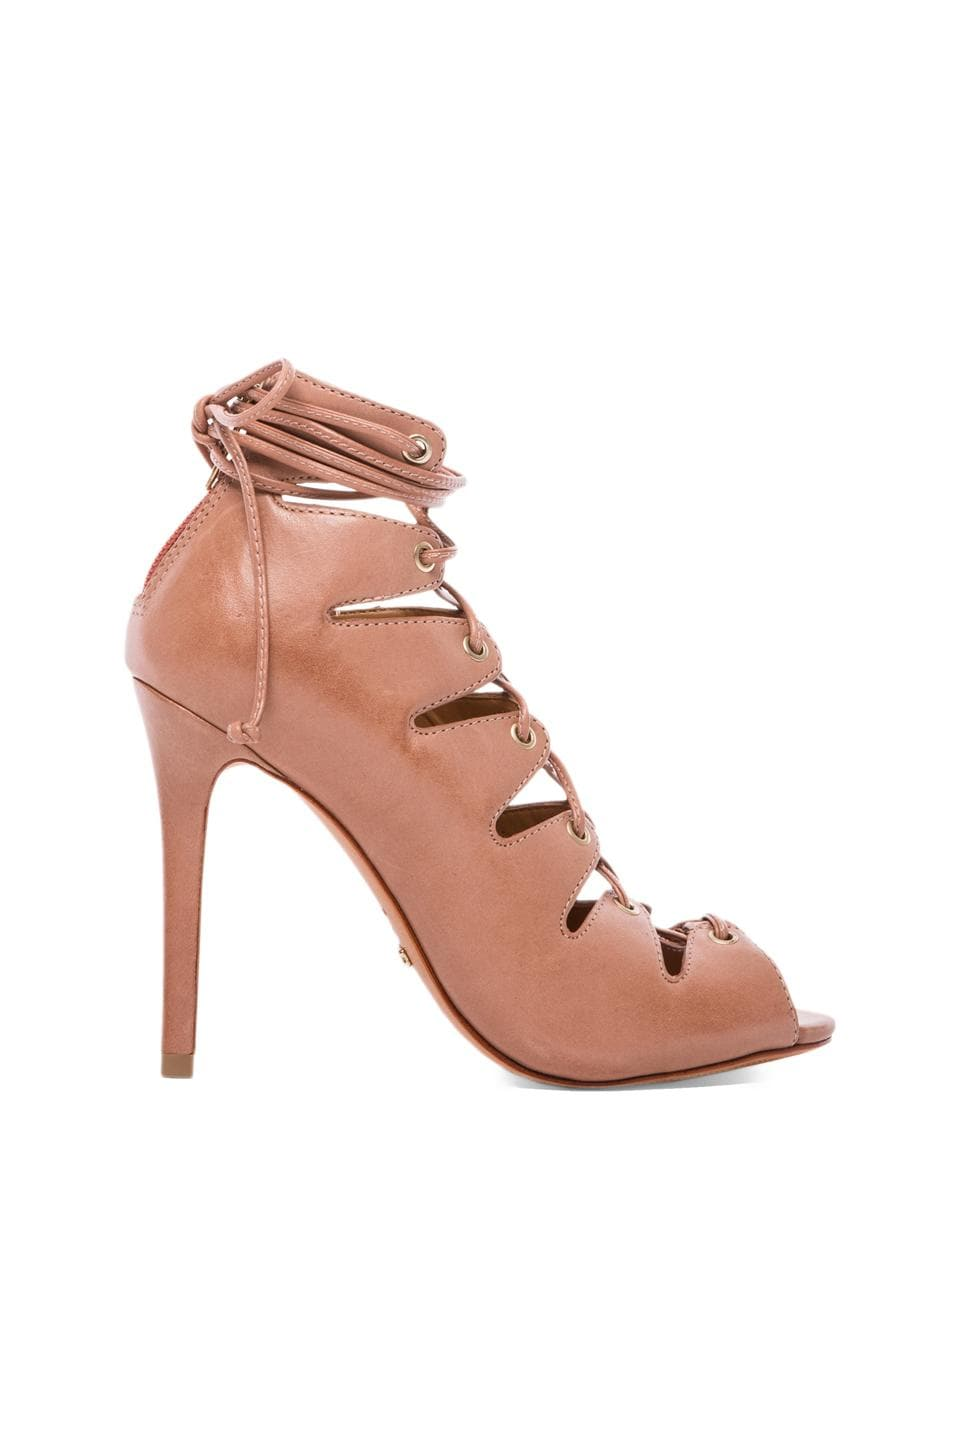 Schutz Slate Heel in Toasted